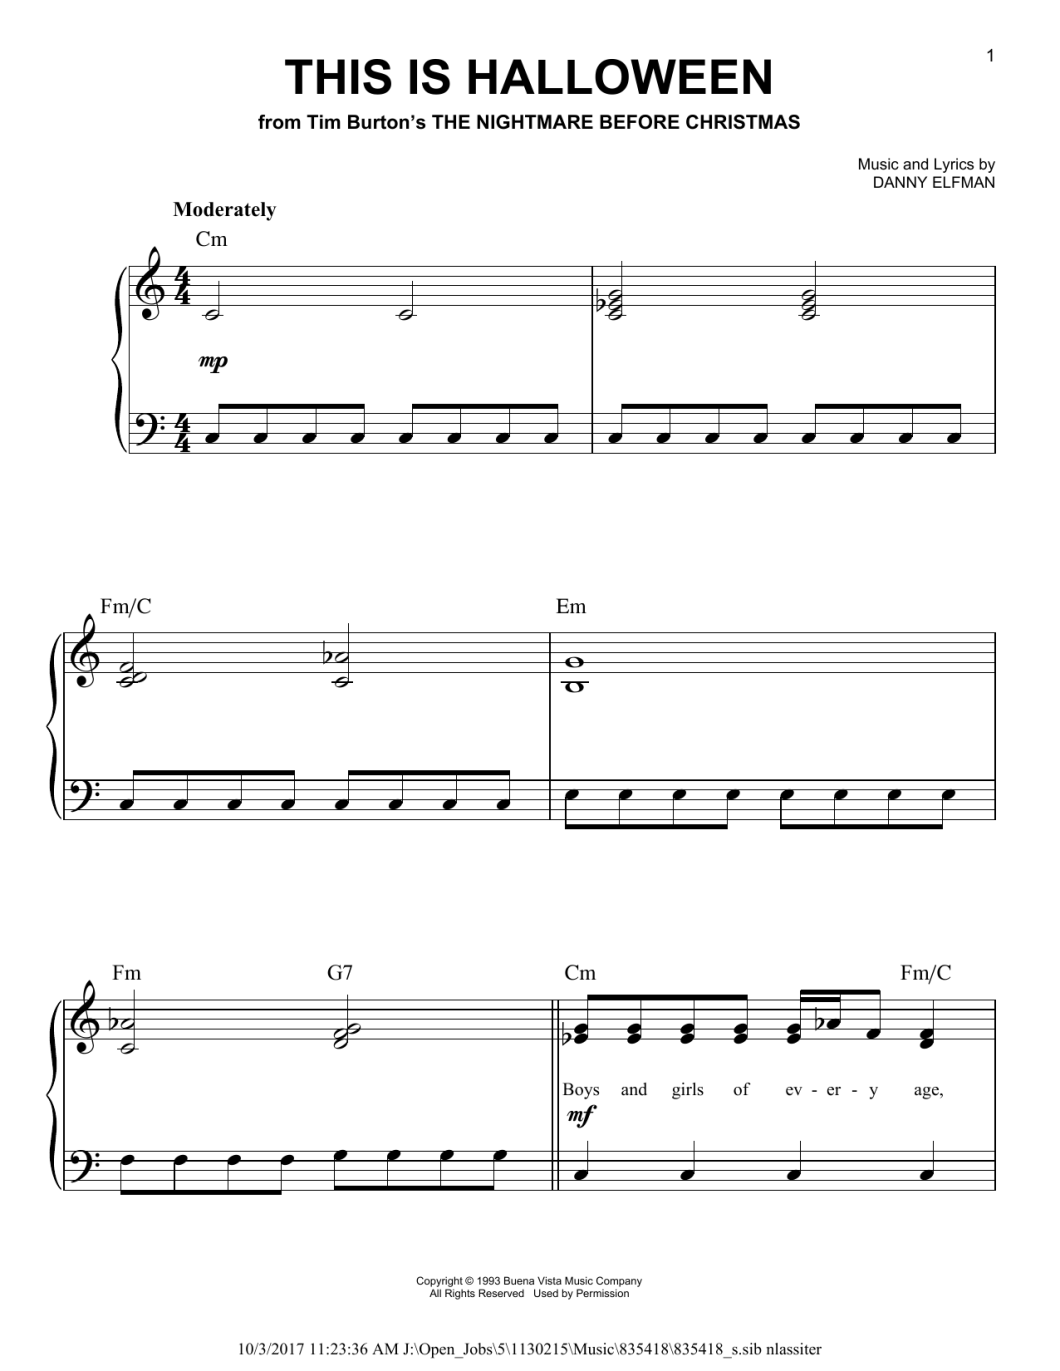 This Is Halloween Piano Tabs Easy | Cartooncreative.co